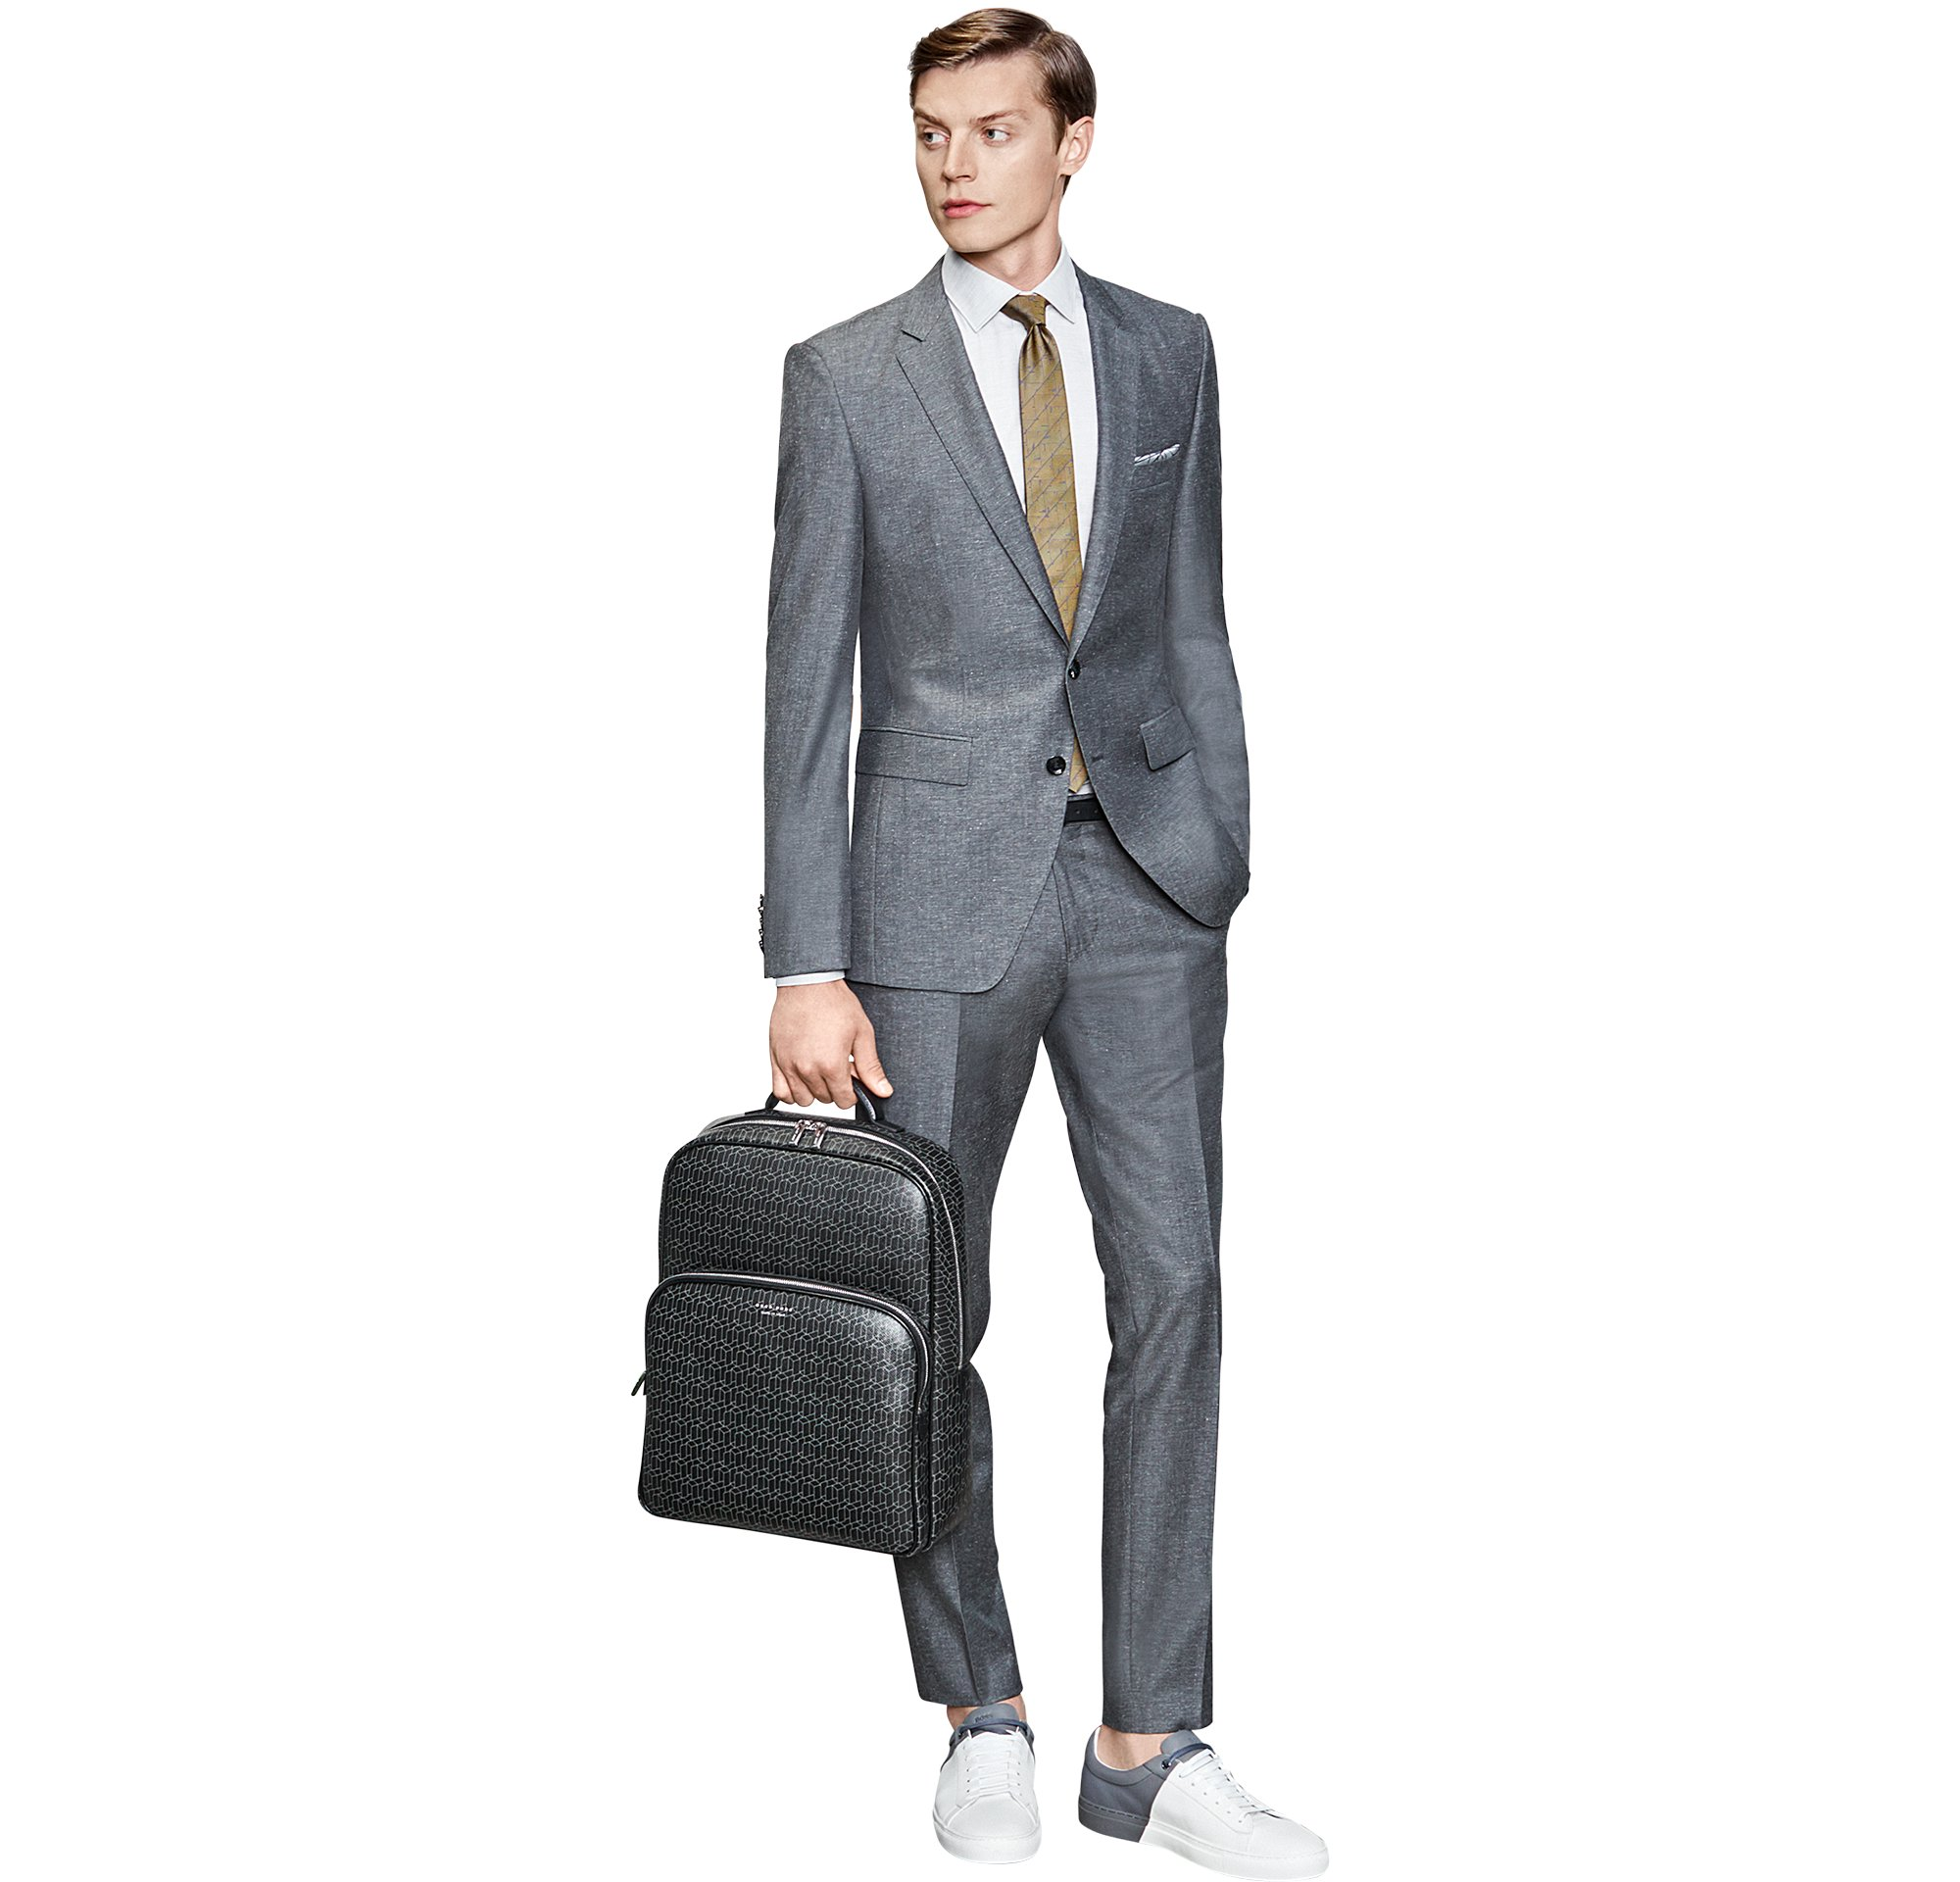 Suit, shirt, trousers, tie, bag and sneakers by BOSS Menswear